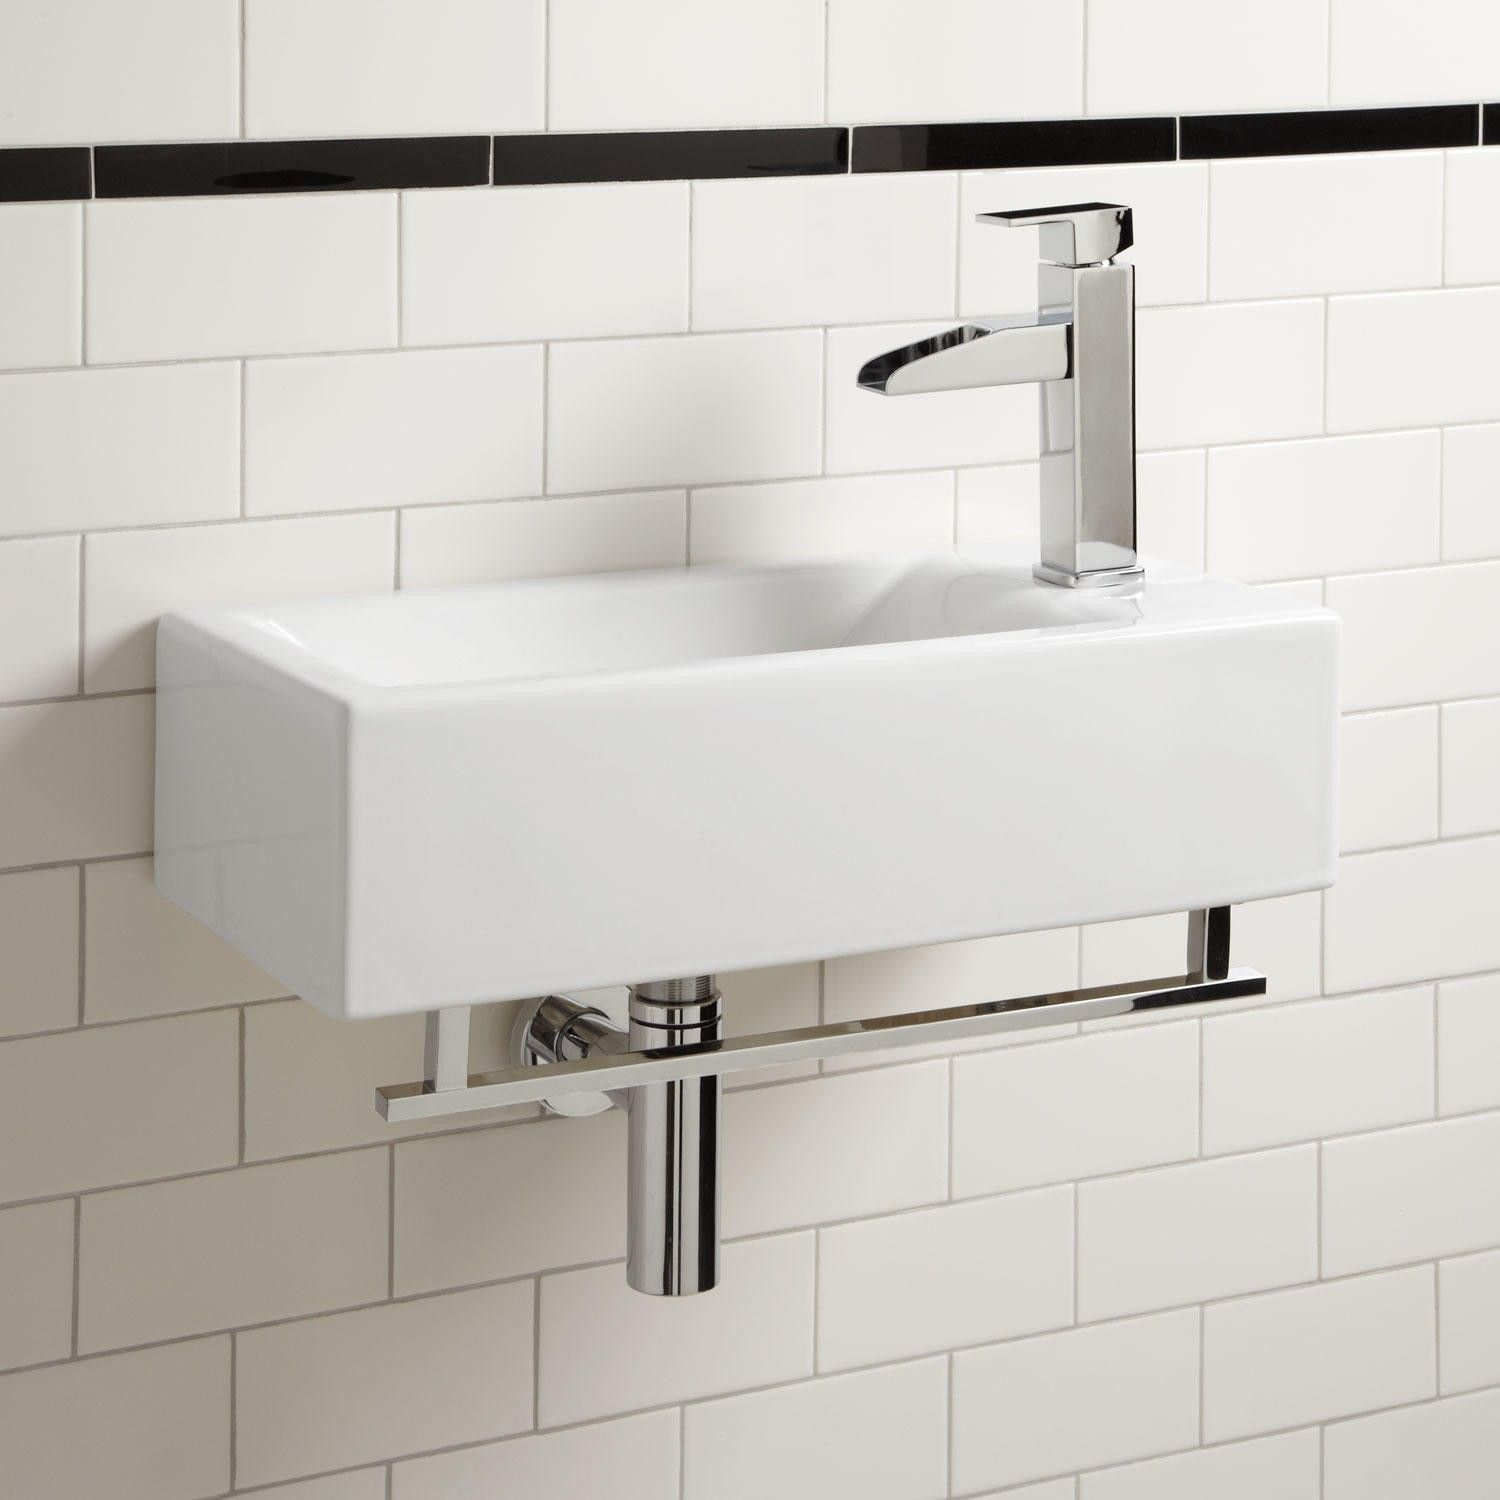 Charmant Leiden Wall Mount Sink With Towel Bar   Wall Mount Sinks   Bathroom Sinks    Bathroom